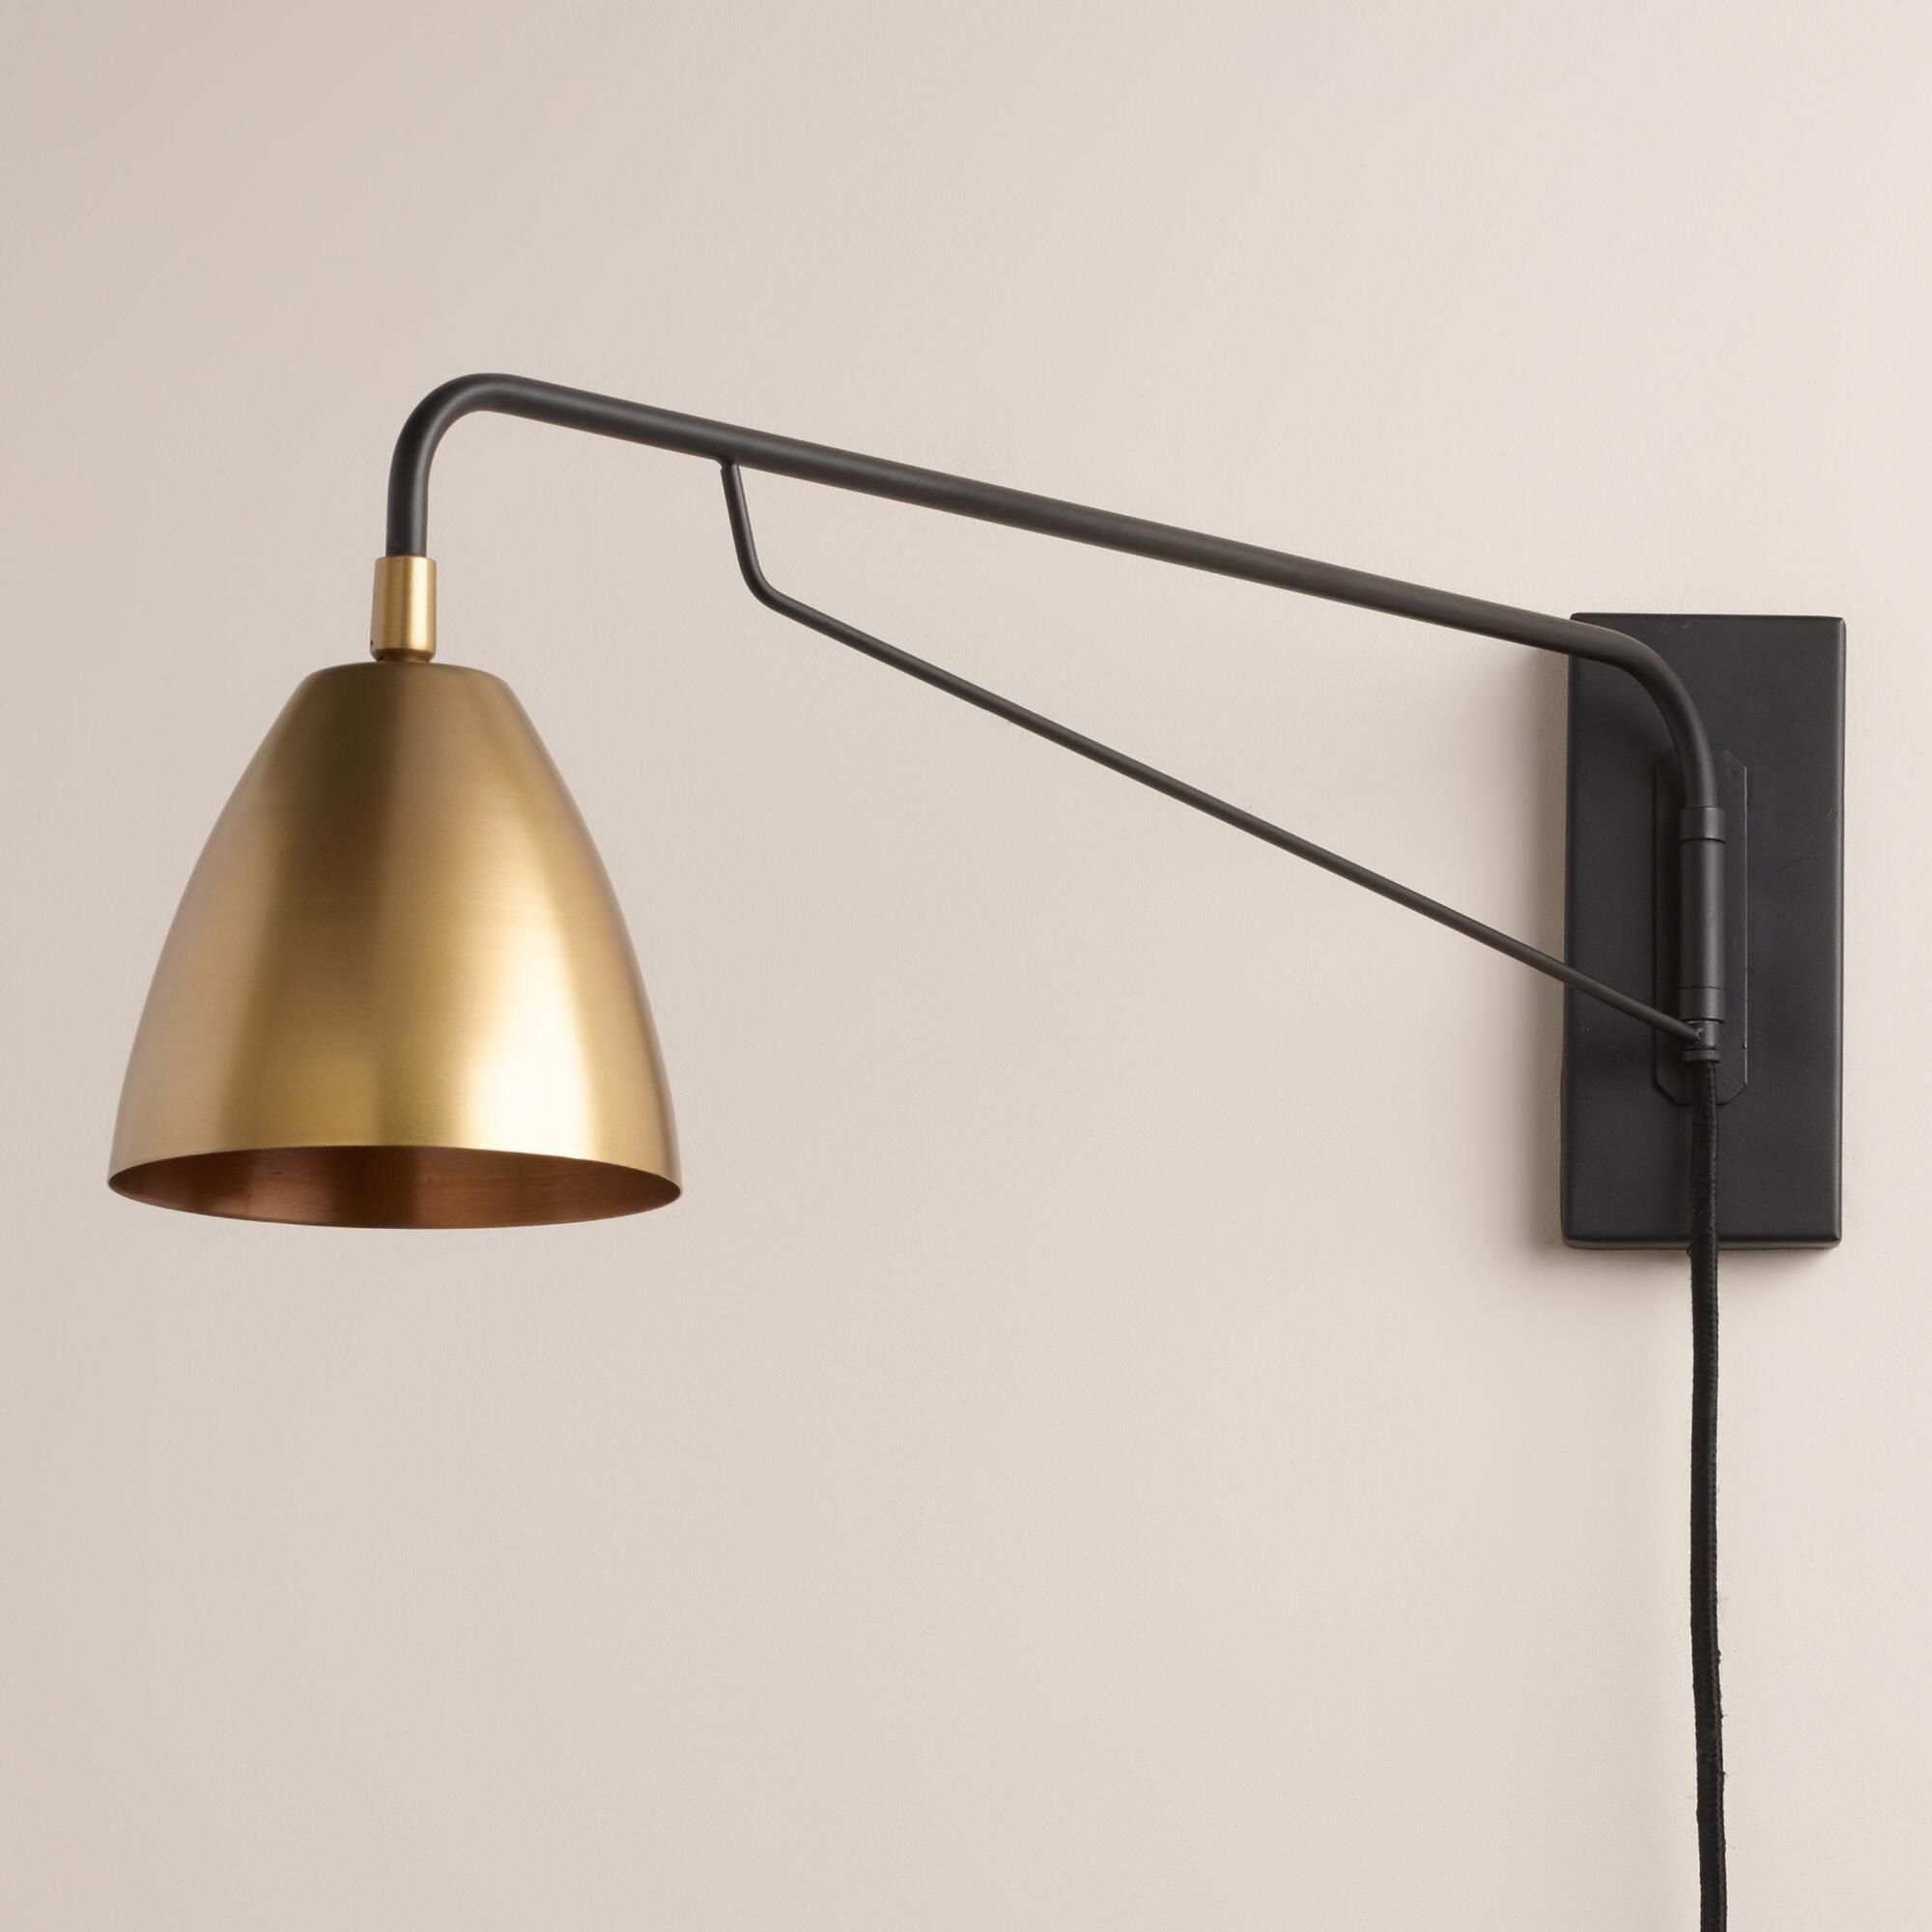 Modern Wall Sconces Plug In : Brass Nook Pivoting Wall Sconce Mid century modern design, Lighting solutions and Antique brass